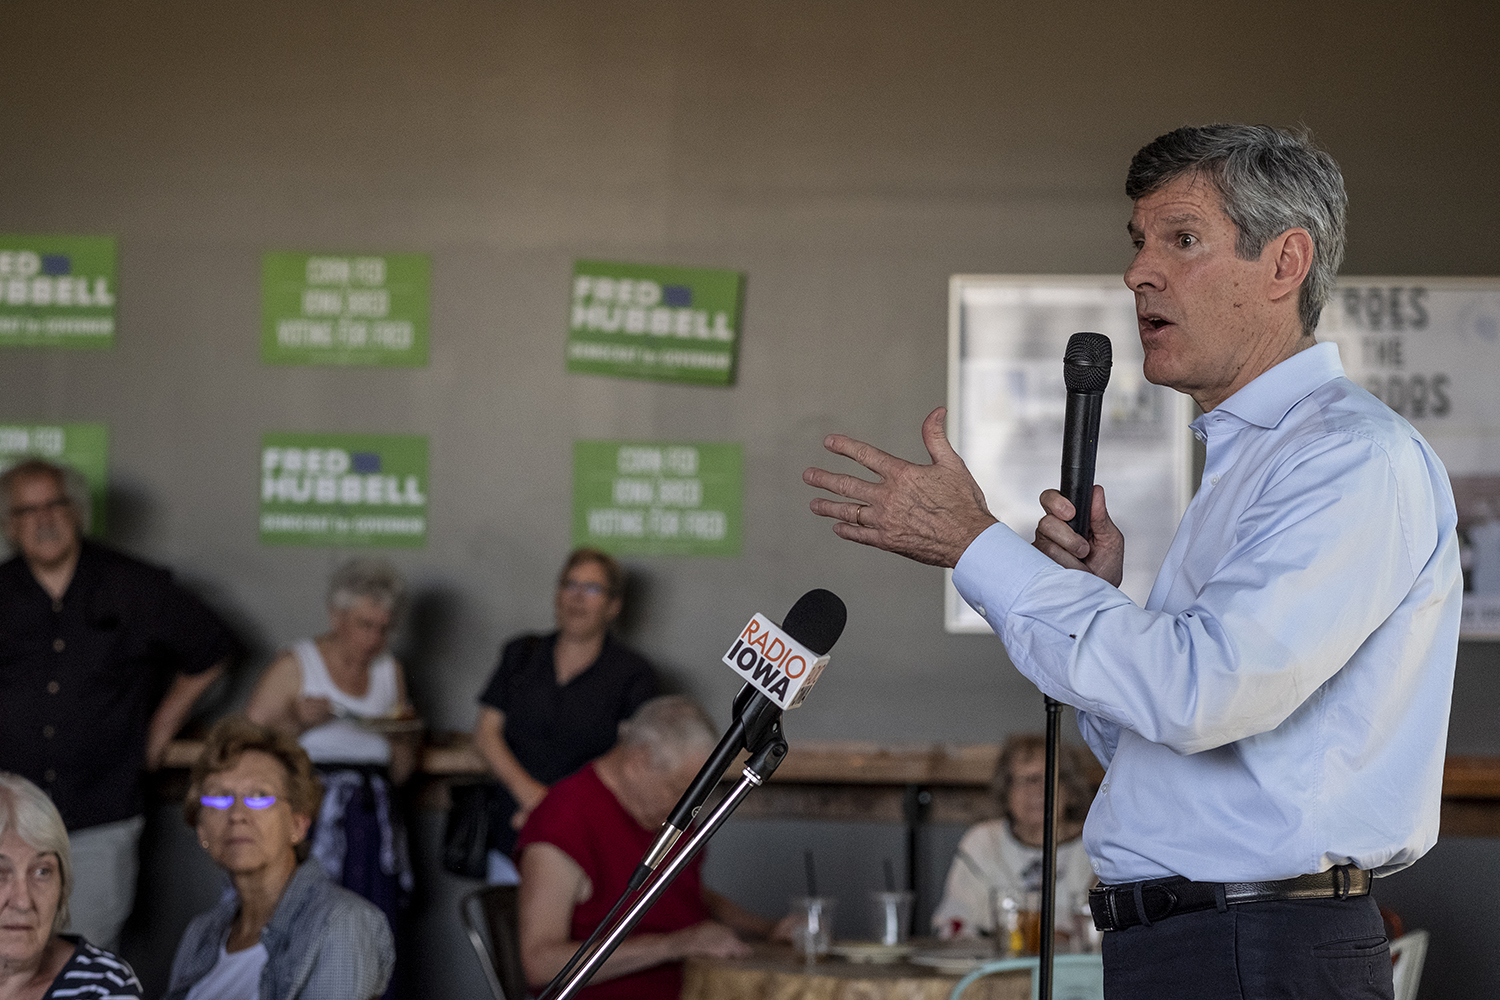 Iowa gubernatorial candidate Fred Hubbell speaks at a campaign event at the Big Grove Brewery in Iowa City on June 3.